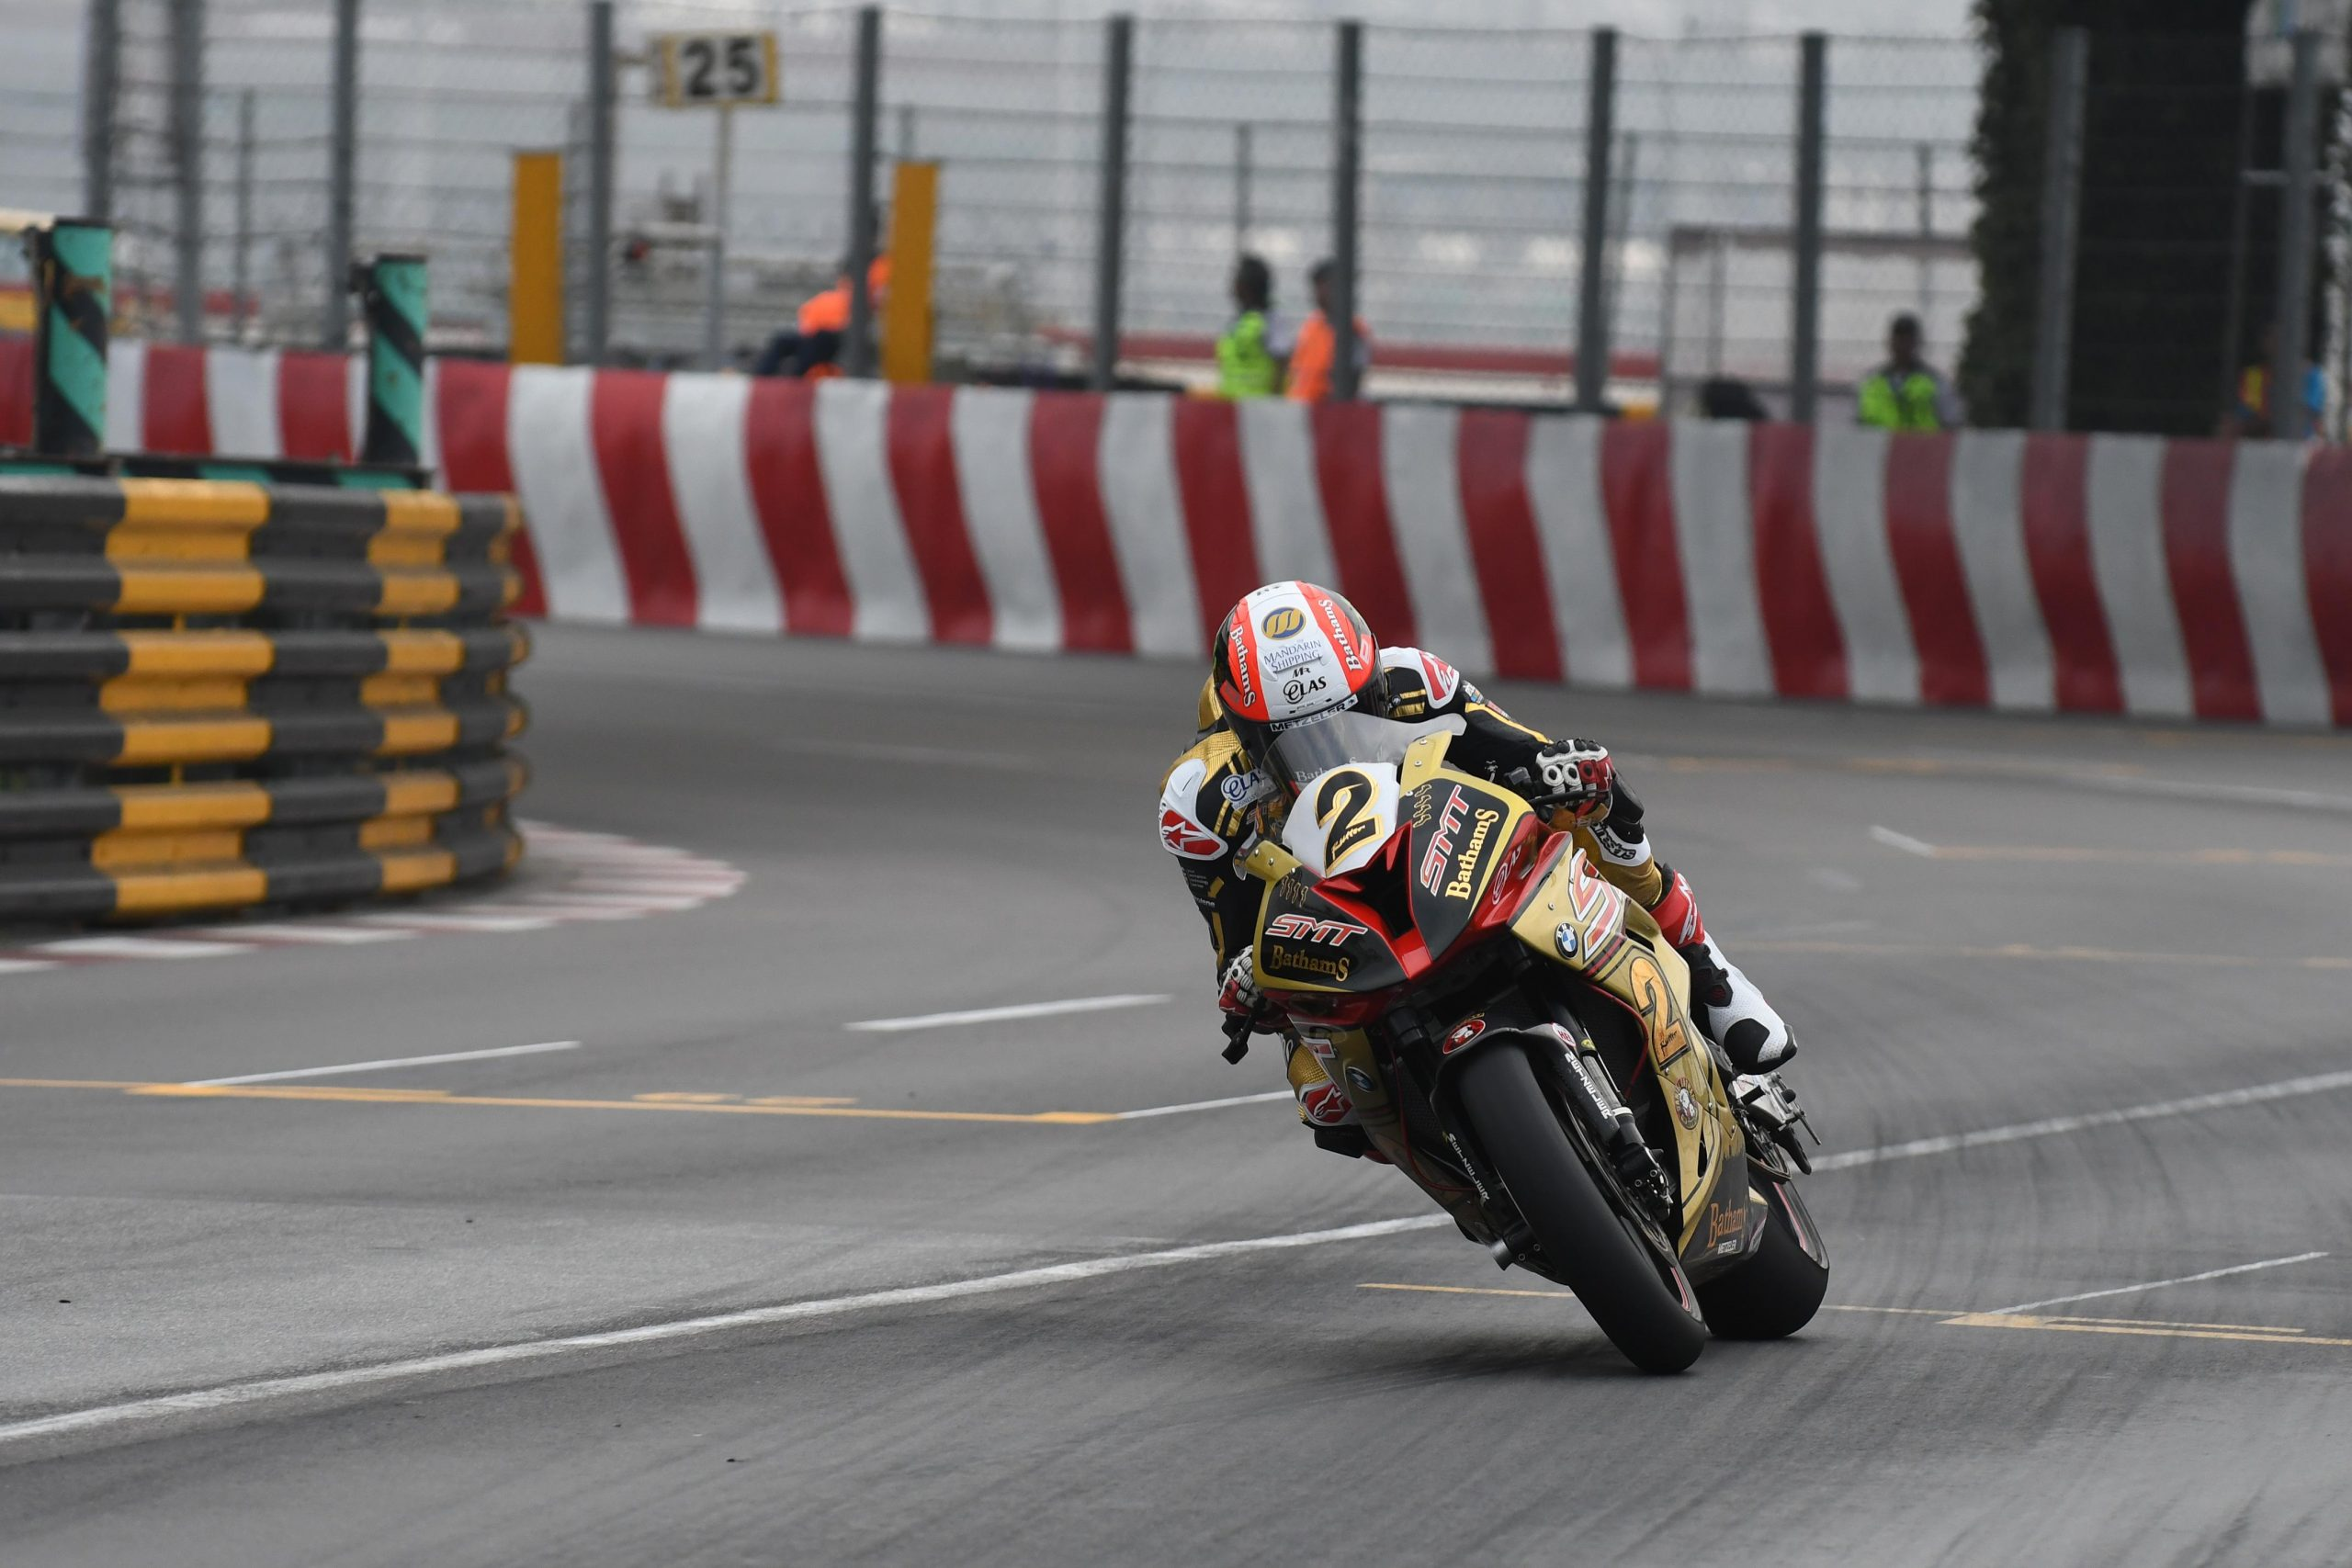 Michael Rutter Macau 2016, image credit Stephen Davison (Pacemaker Press International)